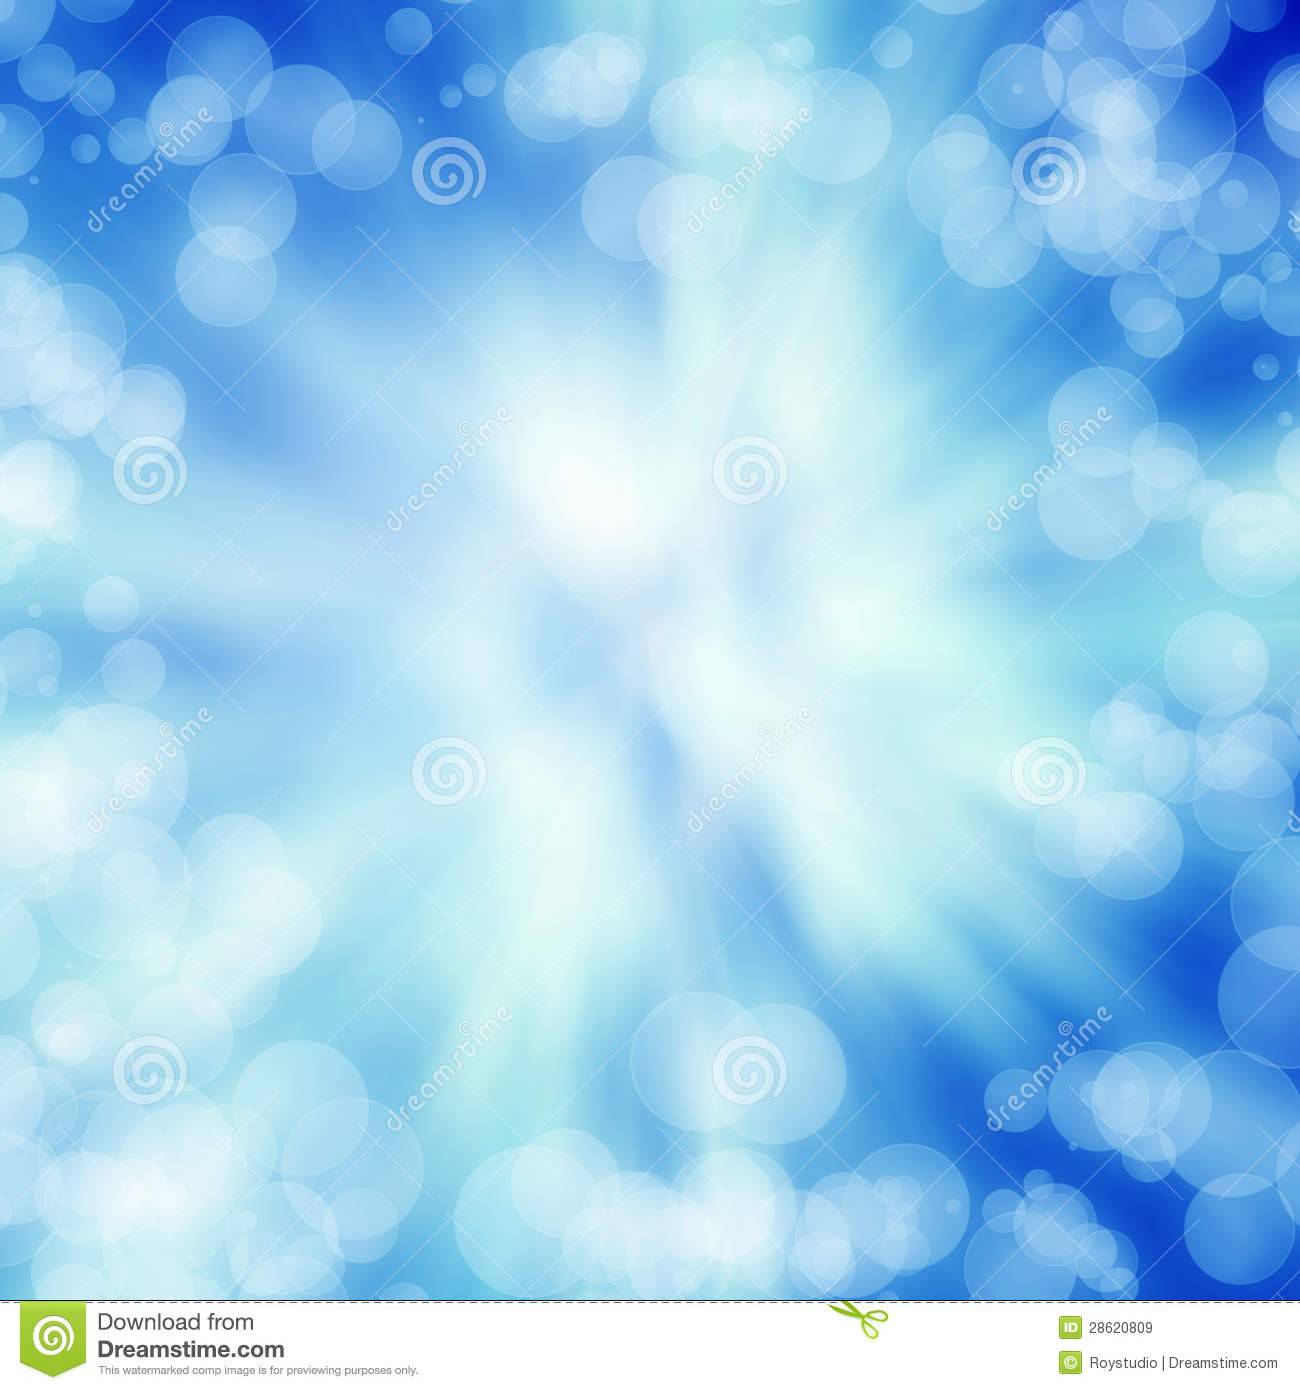 bright blue abstract backgrond texture royalty free stock images